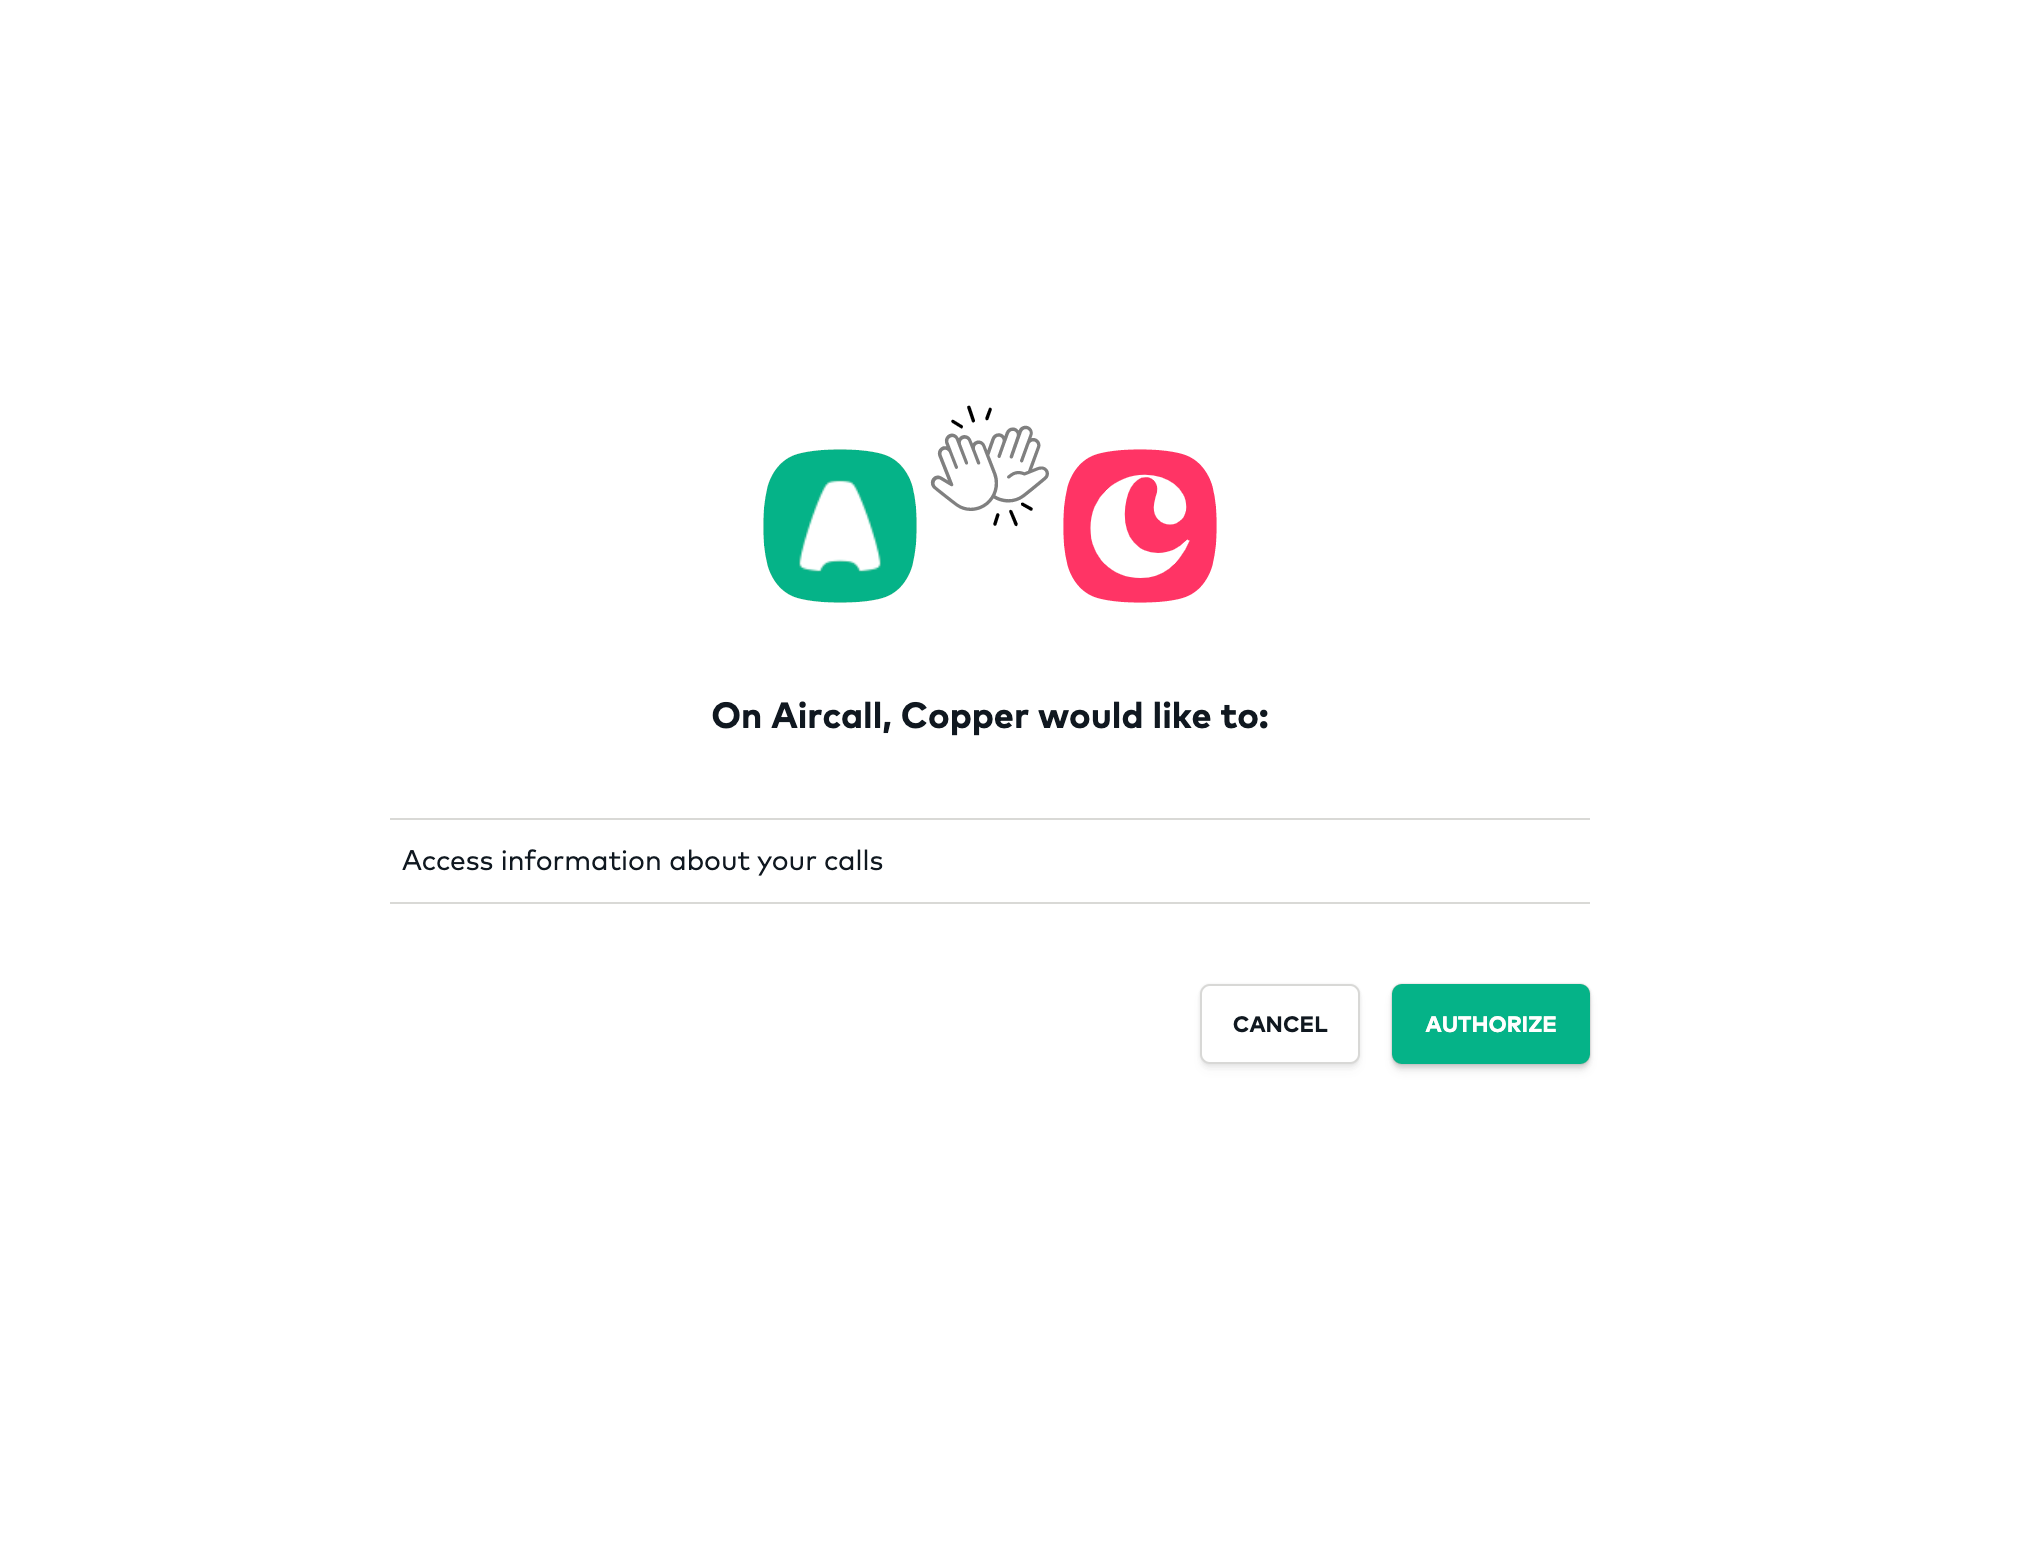 copper_aircall_1stauthentication.png